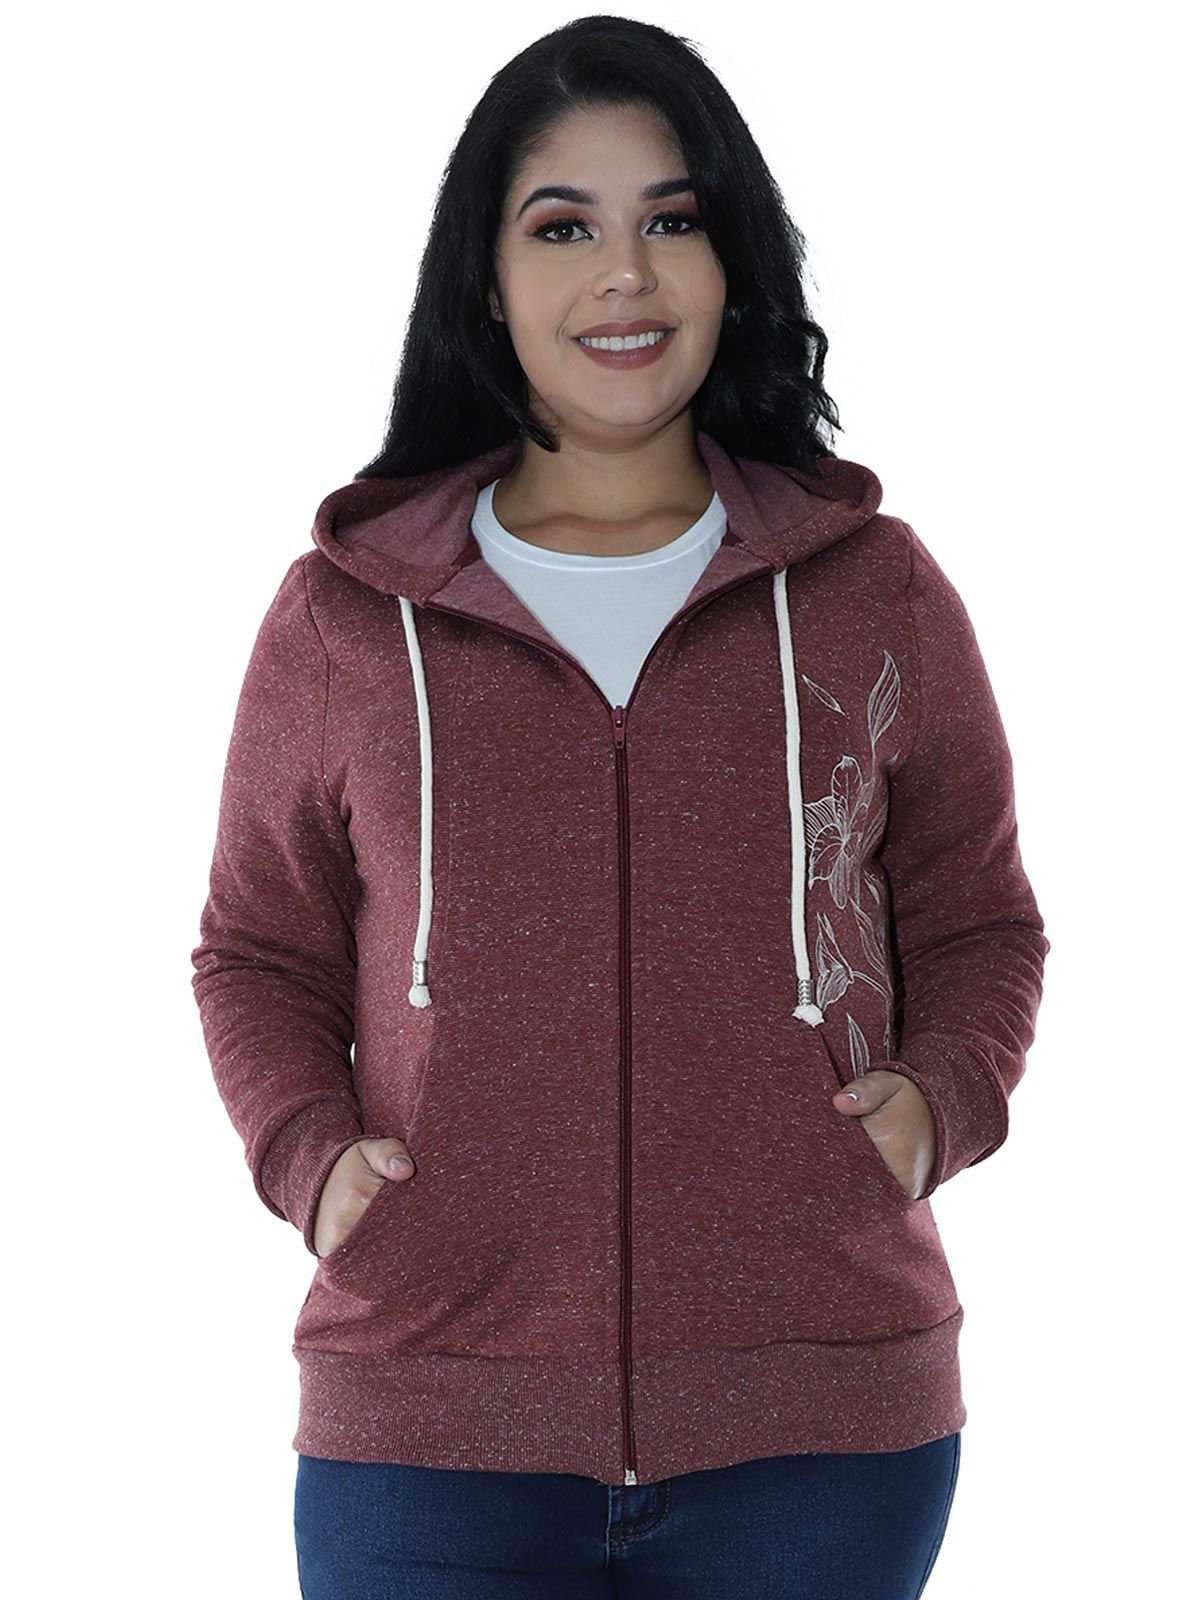 Casaco Plus Size Moletom Fleece Botonê Bordo